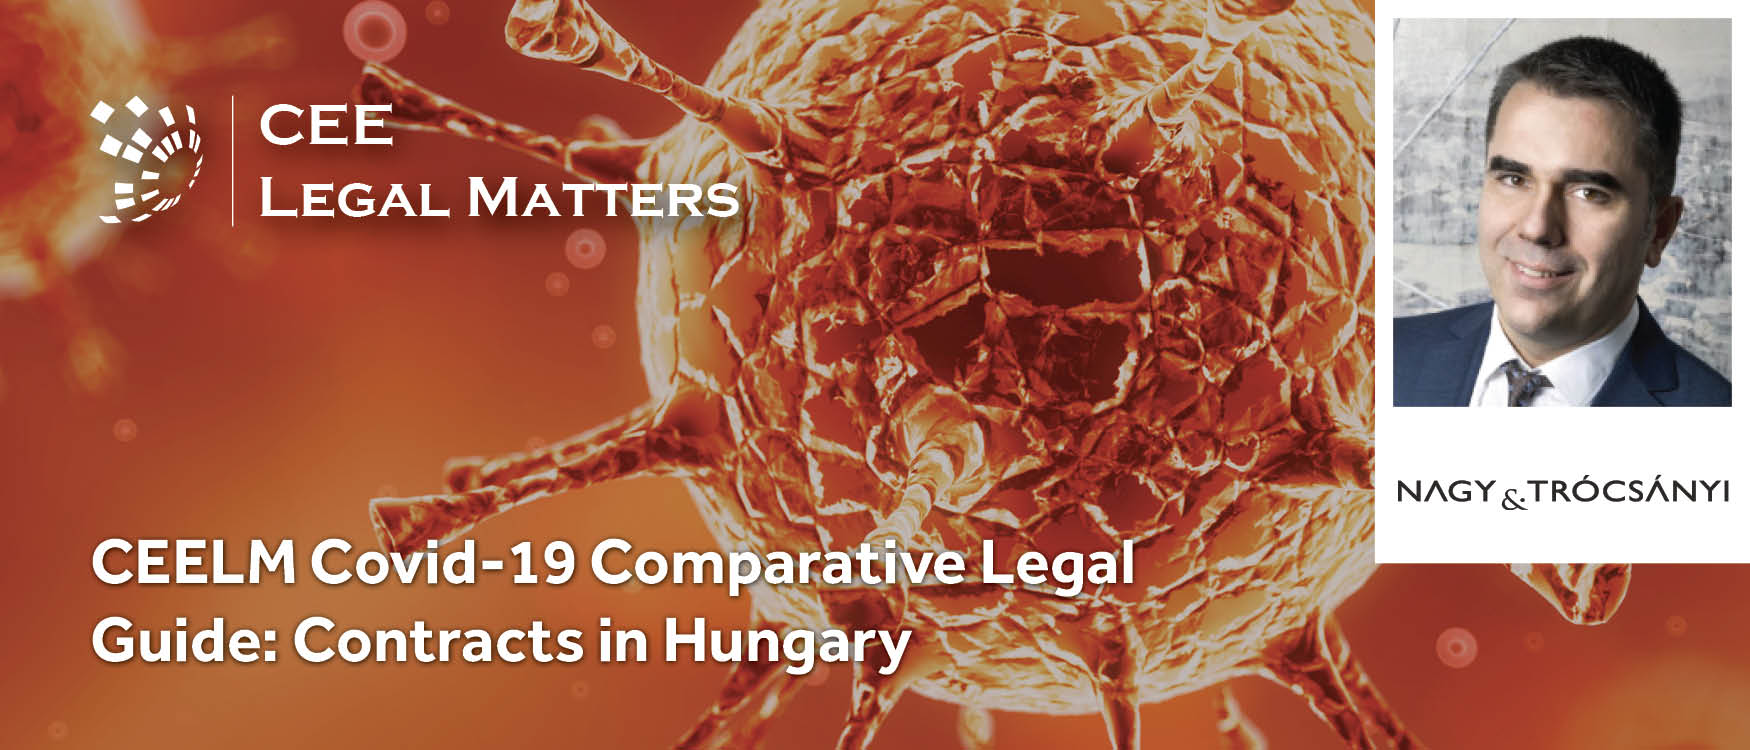 CEELM Covid-19 Comparative Legal Guide: Contracts in Hungary